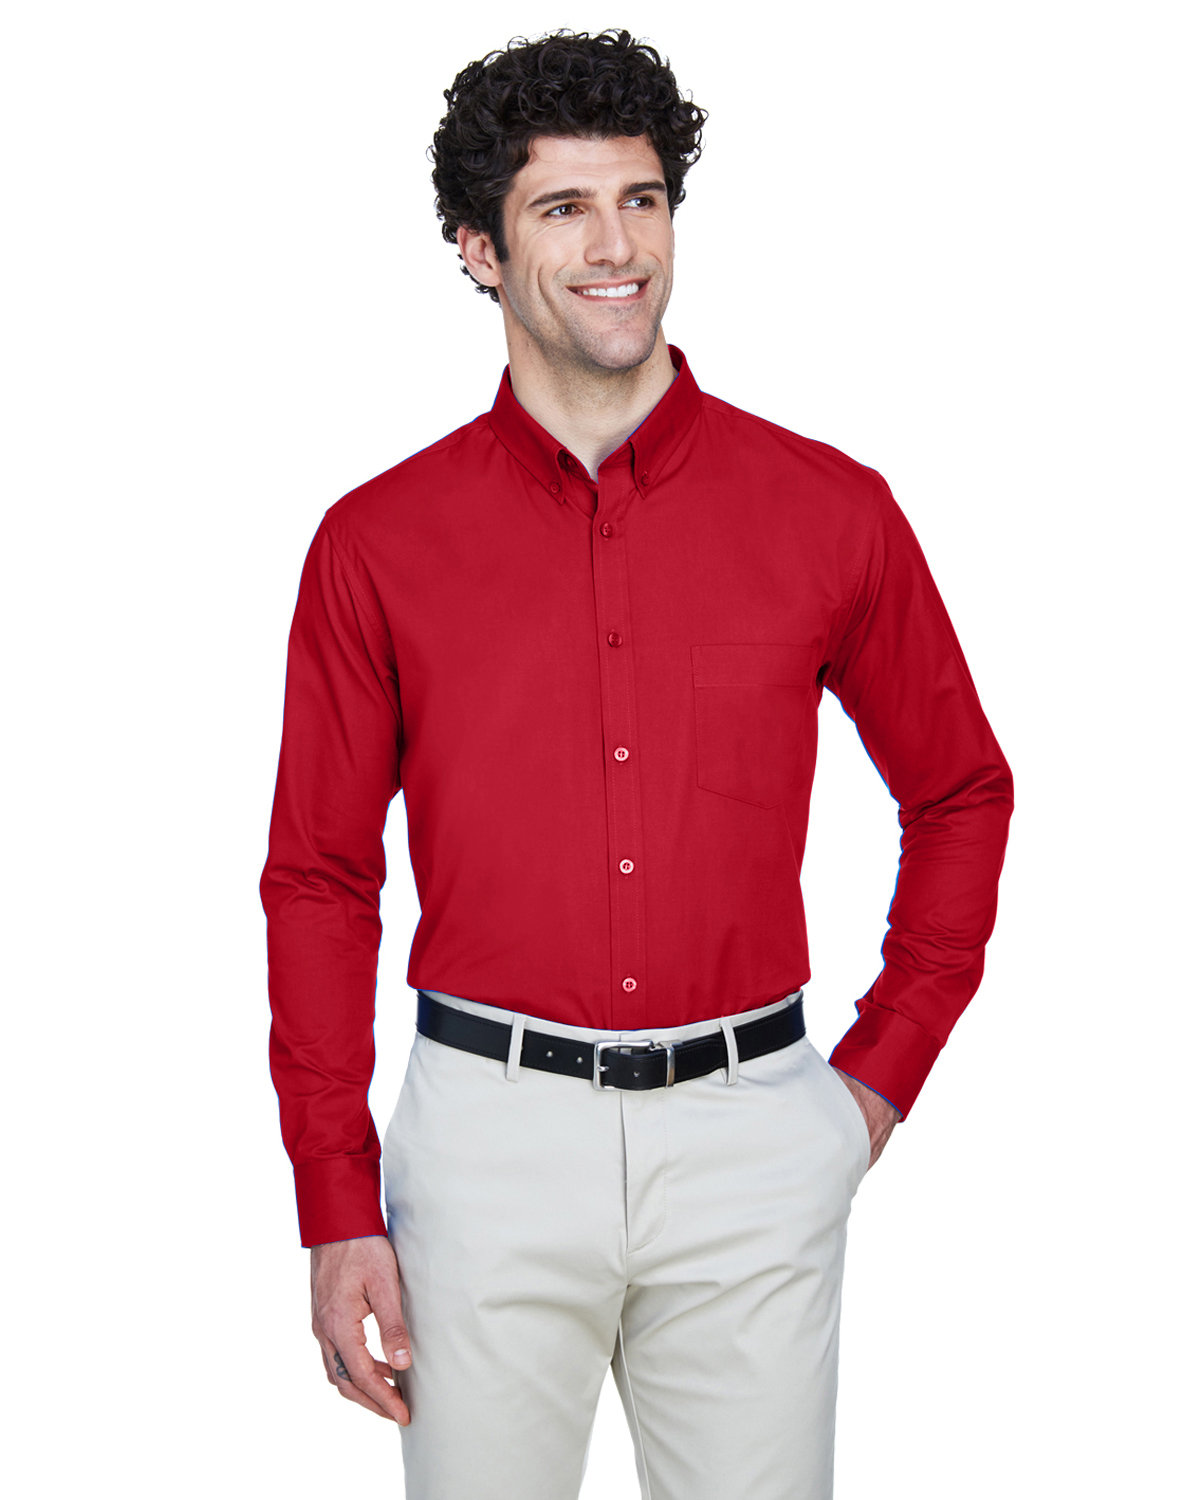 Core 365 Men's Operate Long-Sleeve Twill Shirt CLASSIC RED